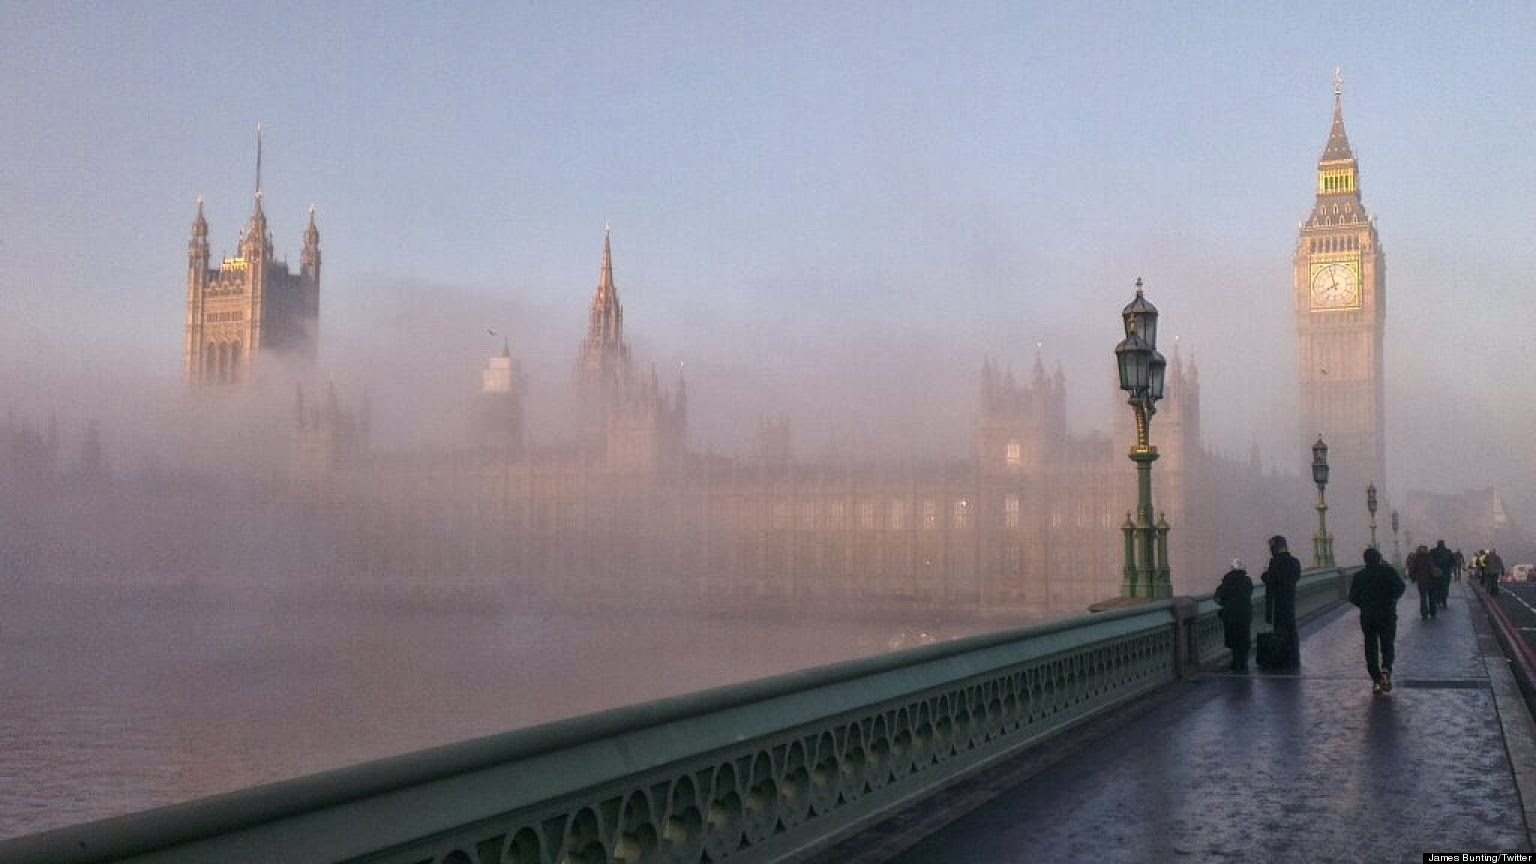 The latest Tweets from London Fog (@Londonfog). Weather or Not. NYC.